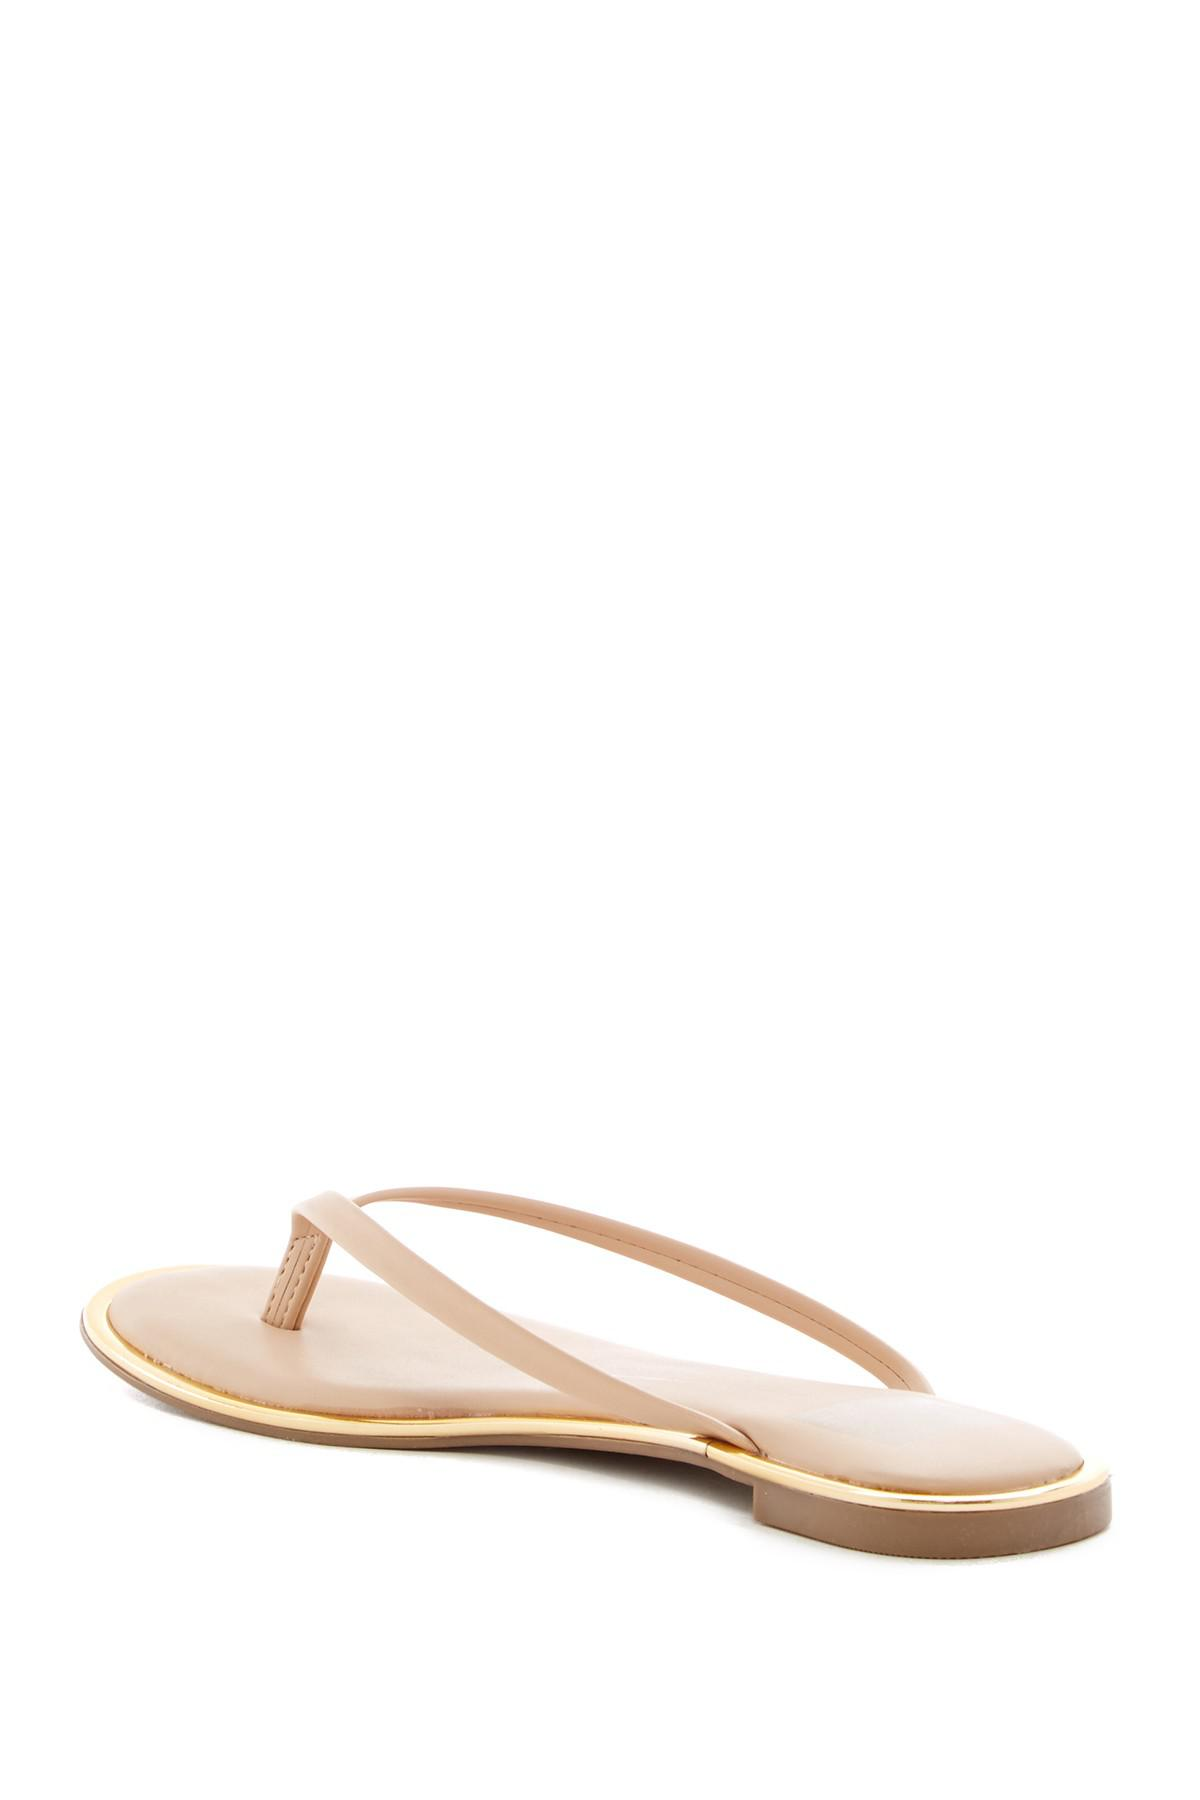 Dolce Vita Dv By Tabby Platform Wedge Sandals in Nude